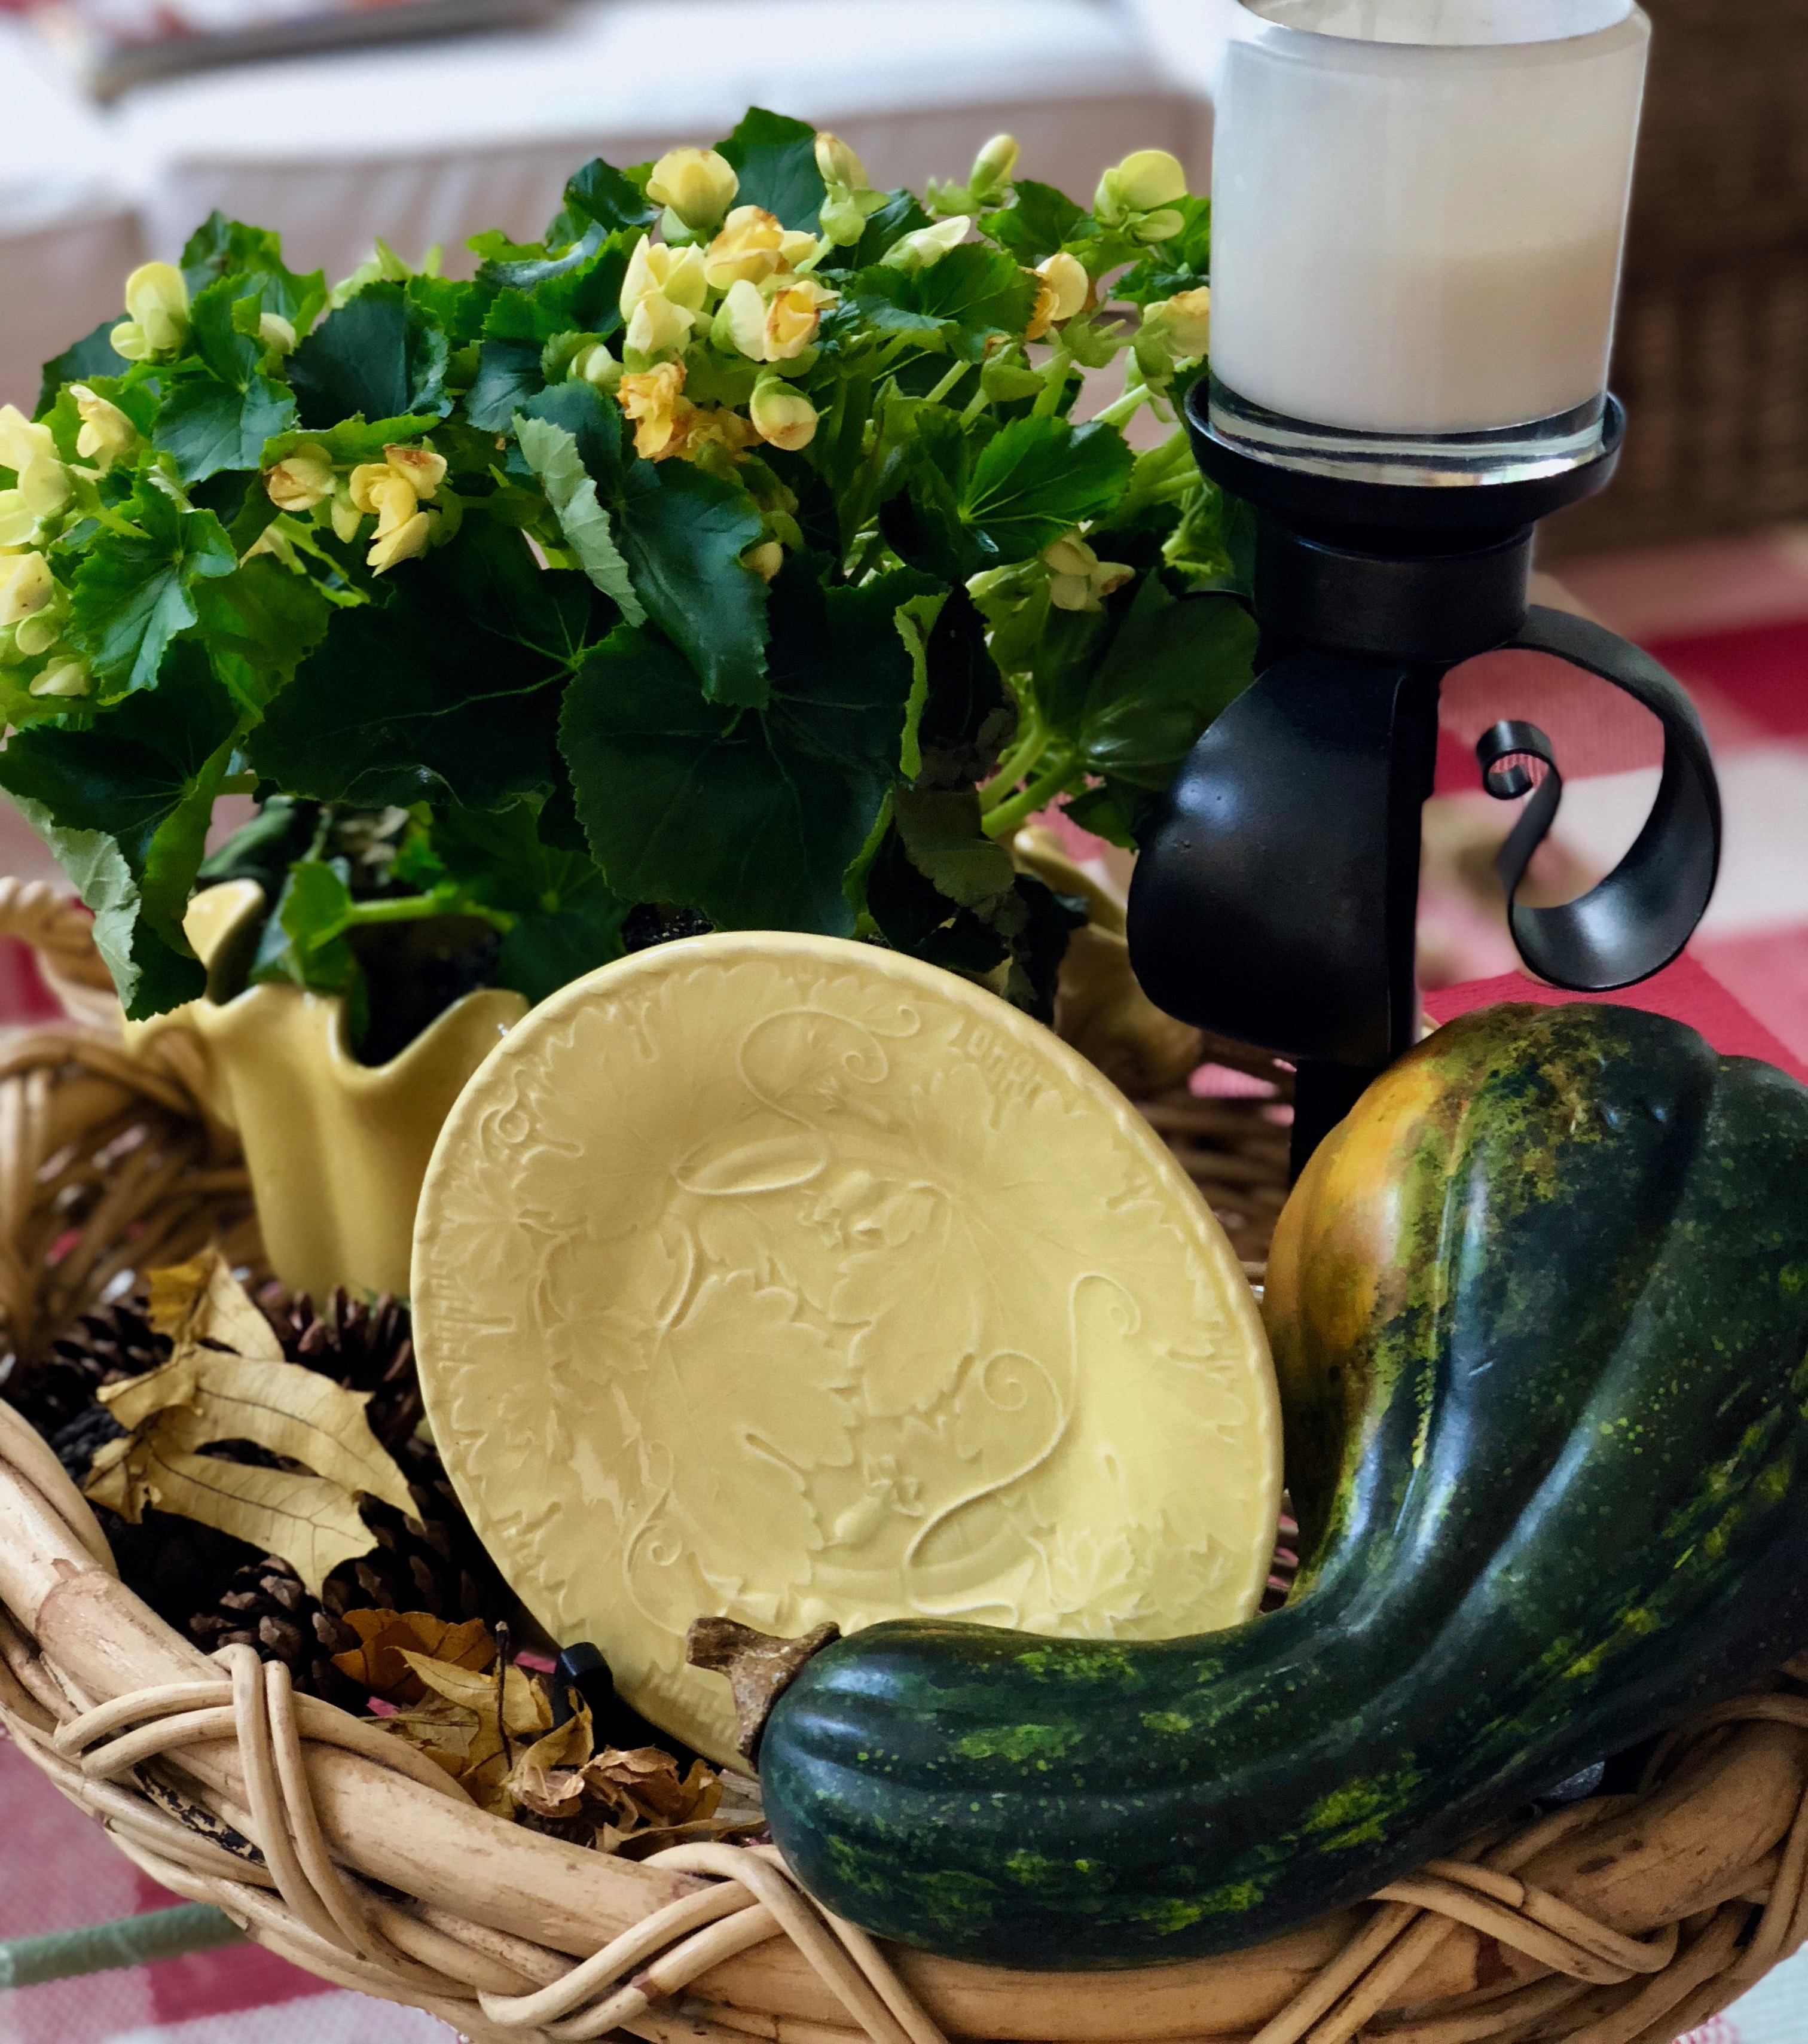 Squash with decorative plate and leaves. Candle and yellow begonia plant. All of this is on a large tray